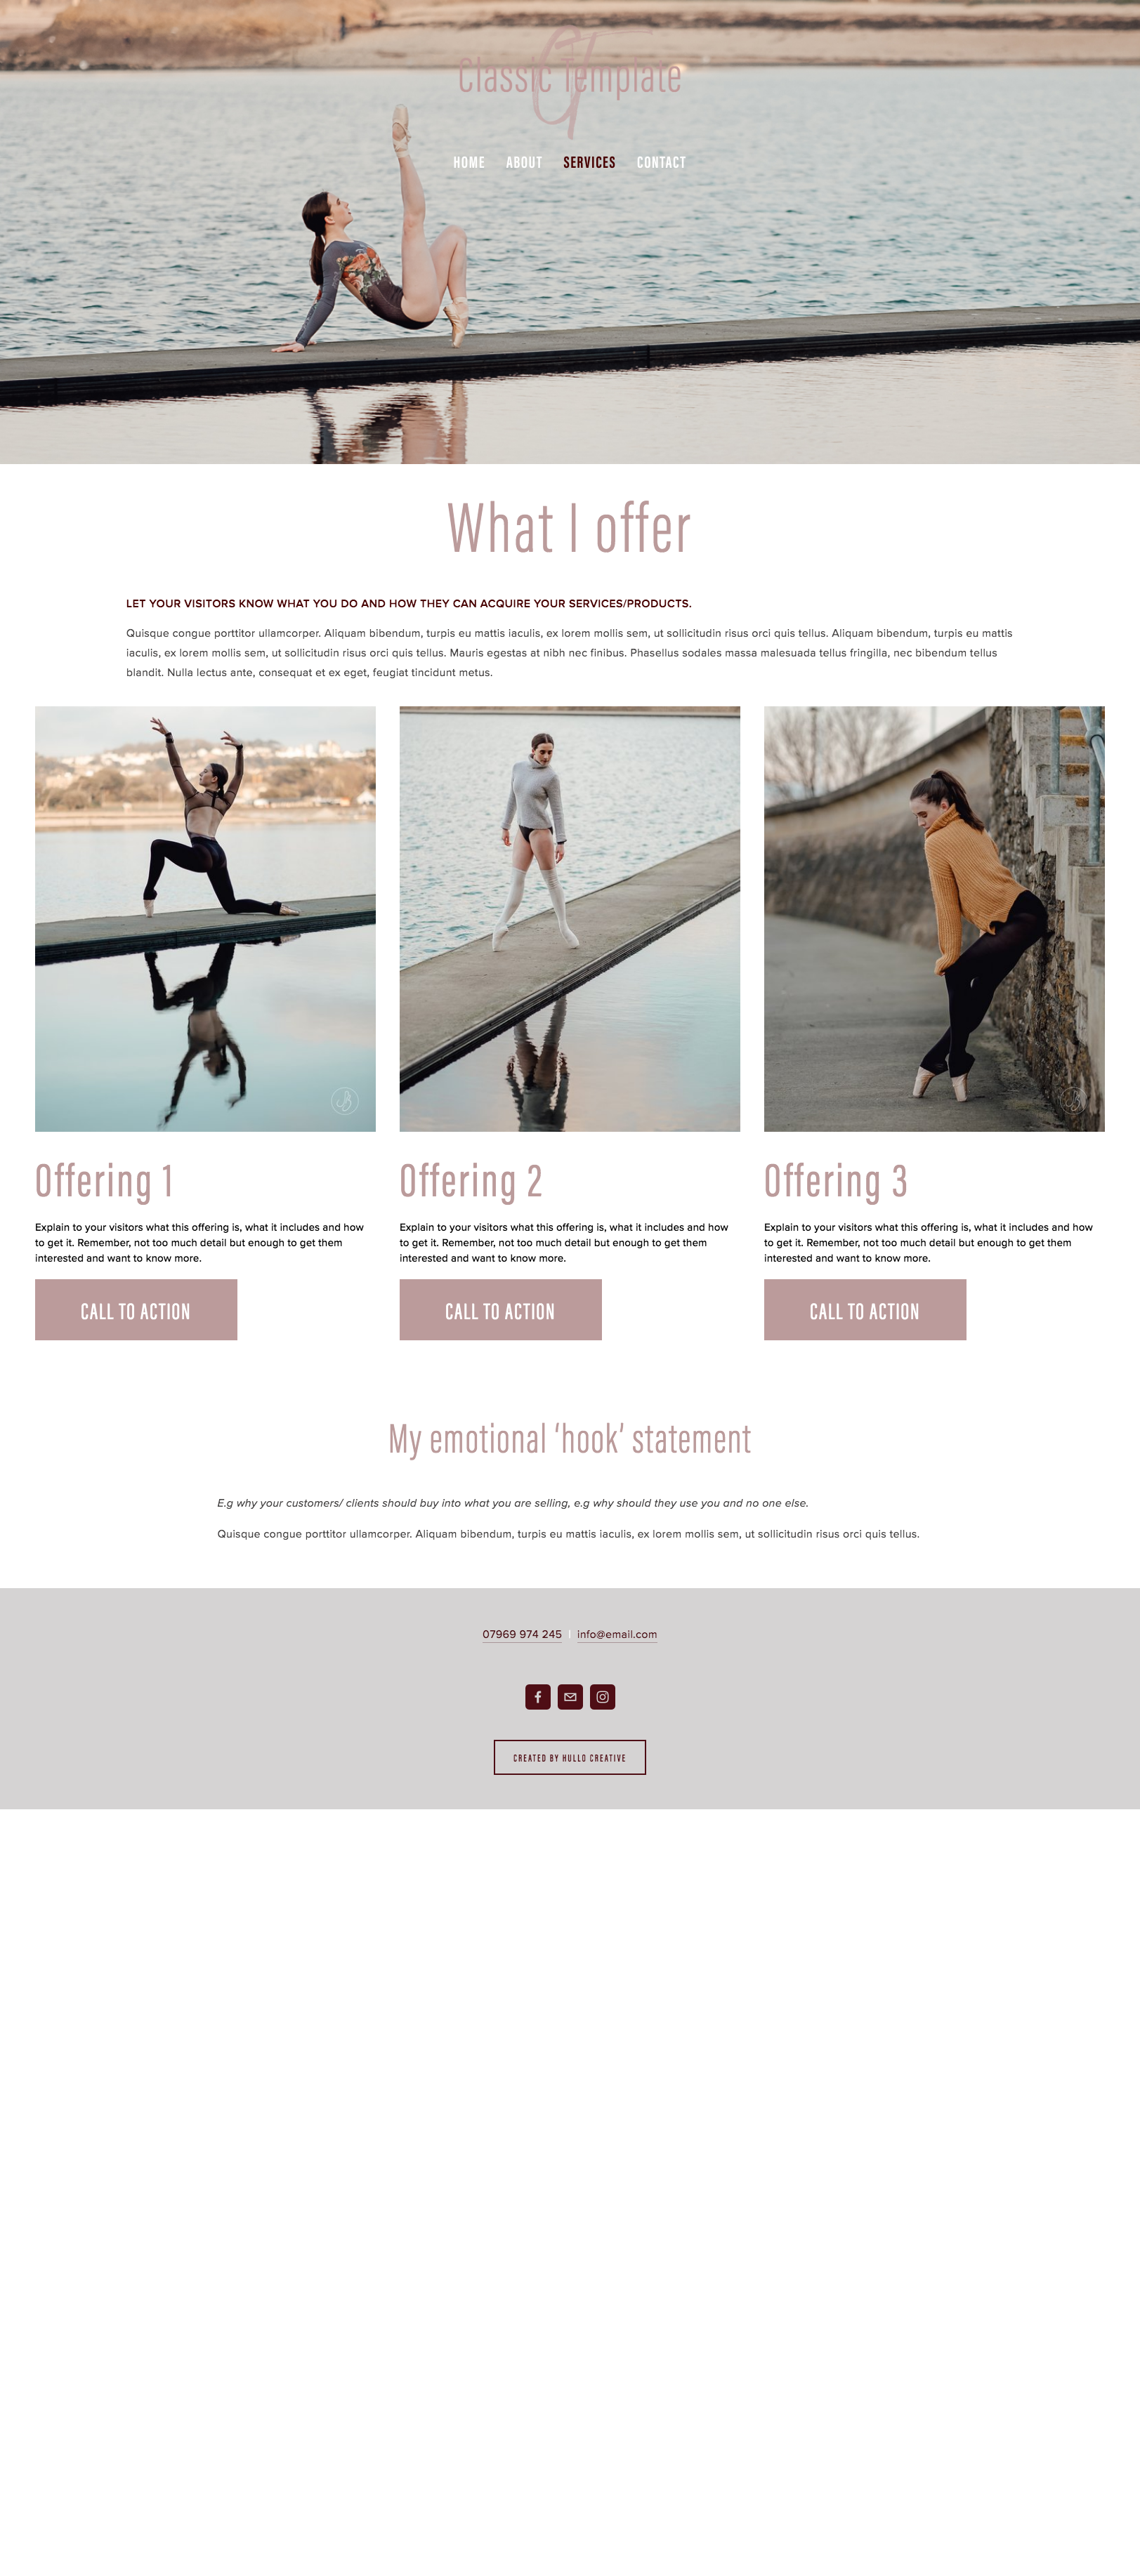 screencapture-classic-template-hullo-squarespace-services-2019-07-24-15_27_502.png